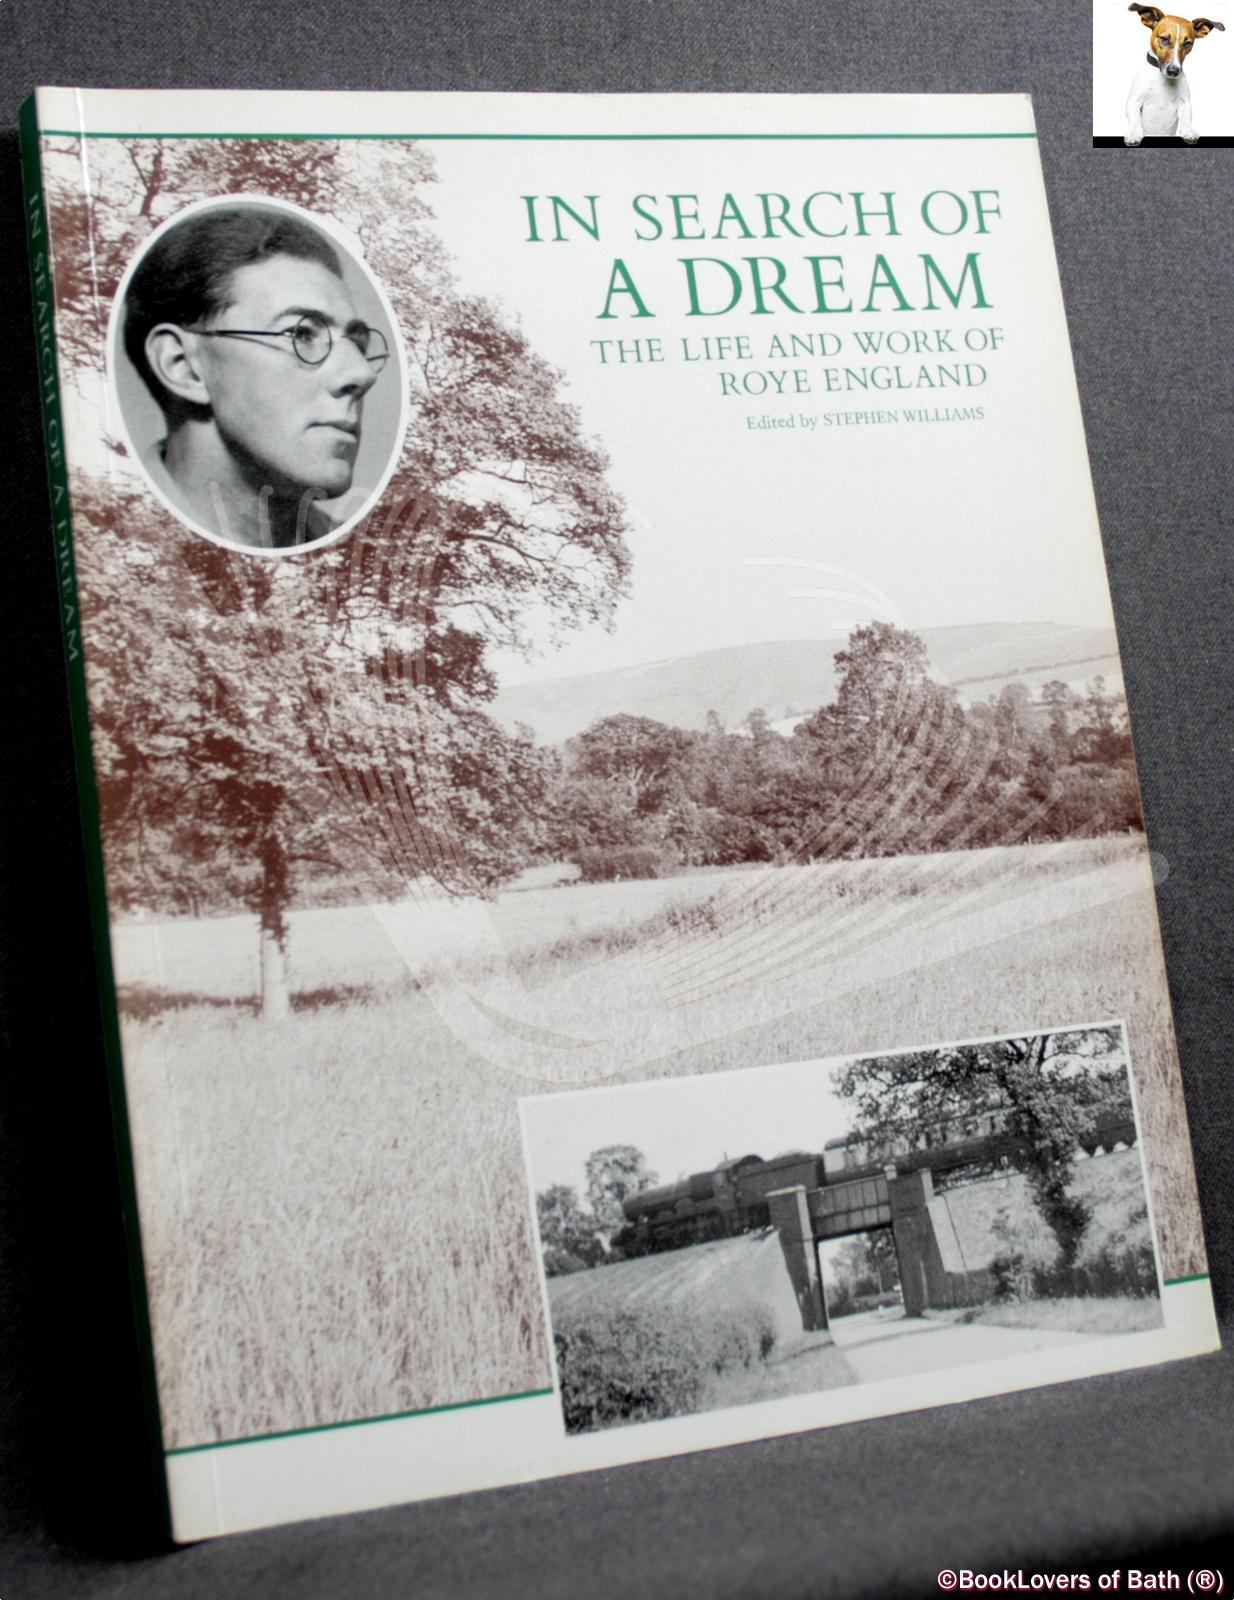 In Search of a Dream: The Life and Work of Roye England - Edited by Stephen Williams